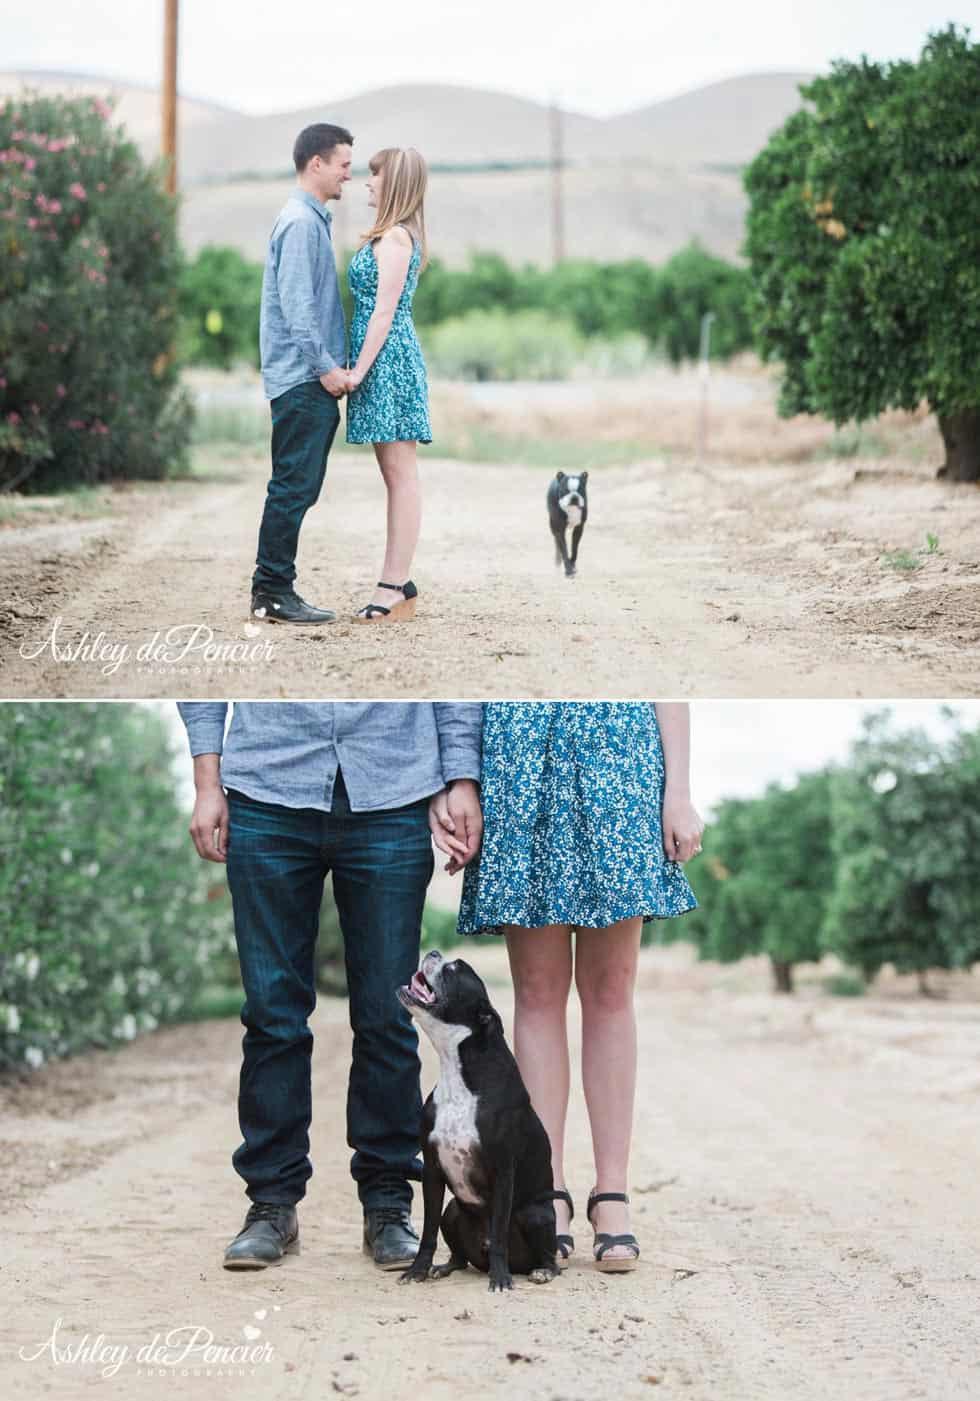 Engagement portraits taken in Orange Grove, California